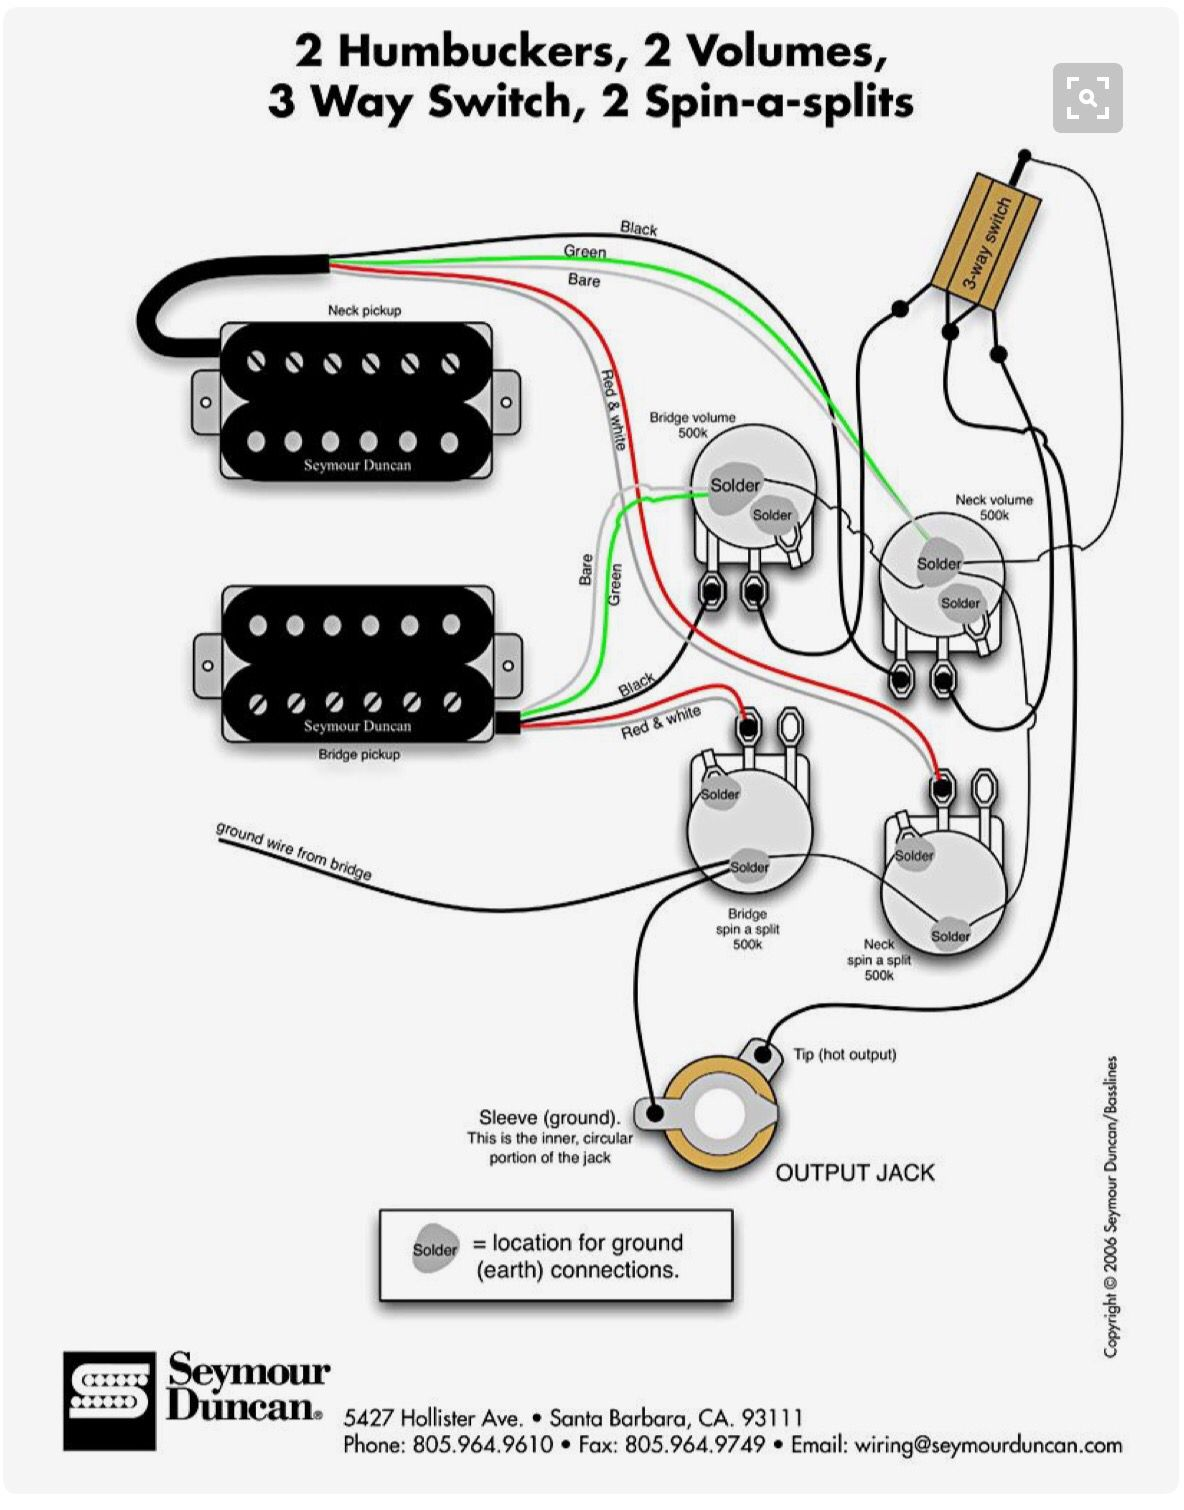 Seymour Duncan Humbucker 3 Way Switch Wiring